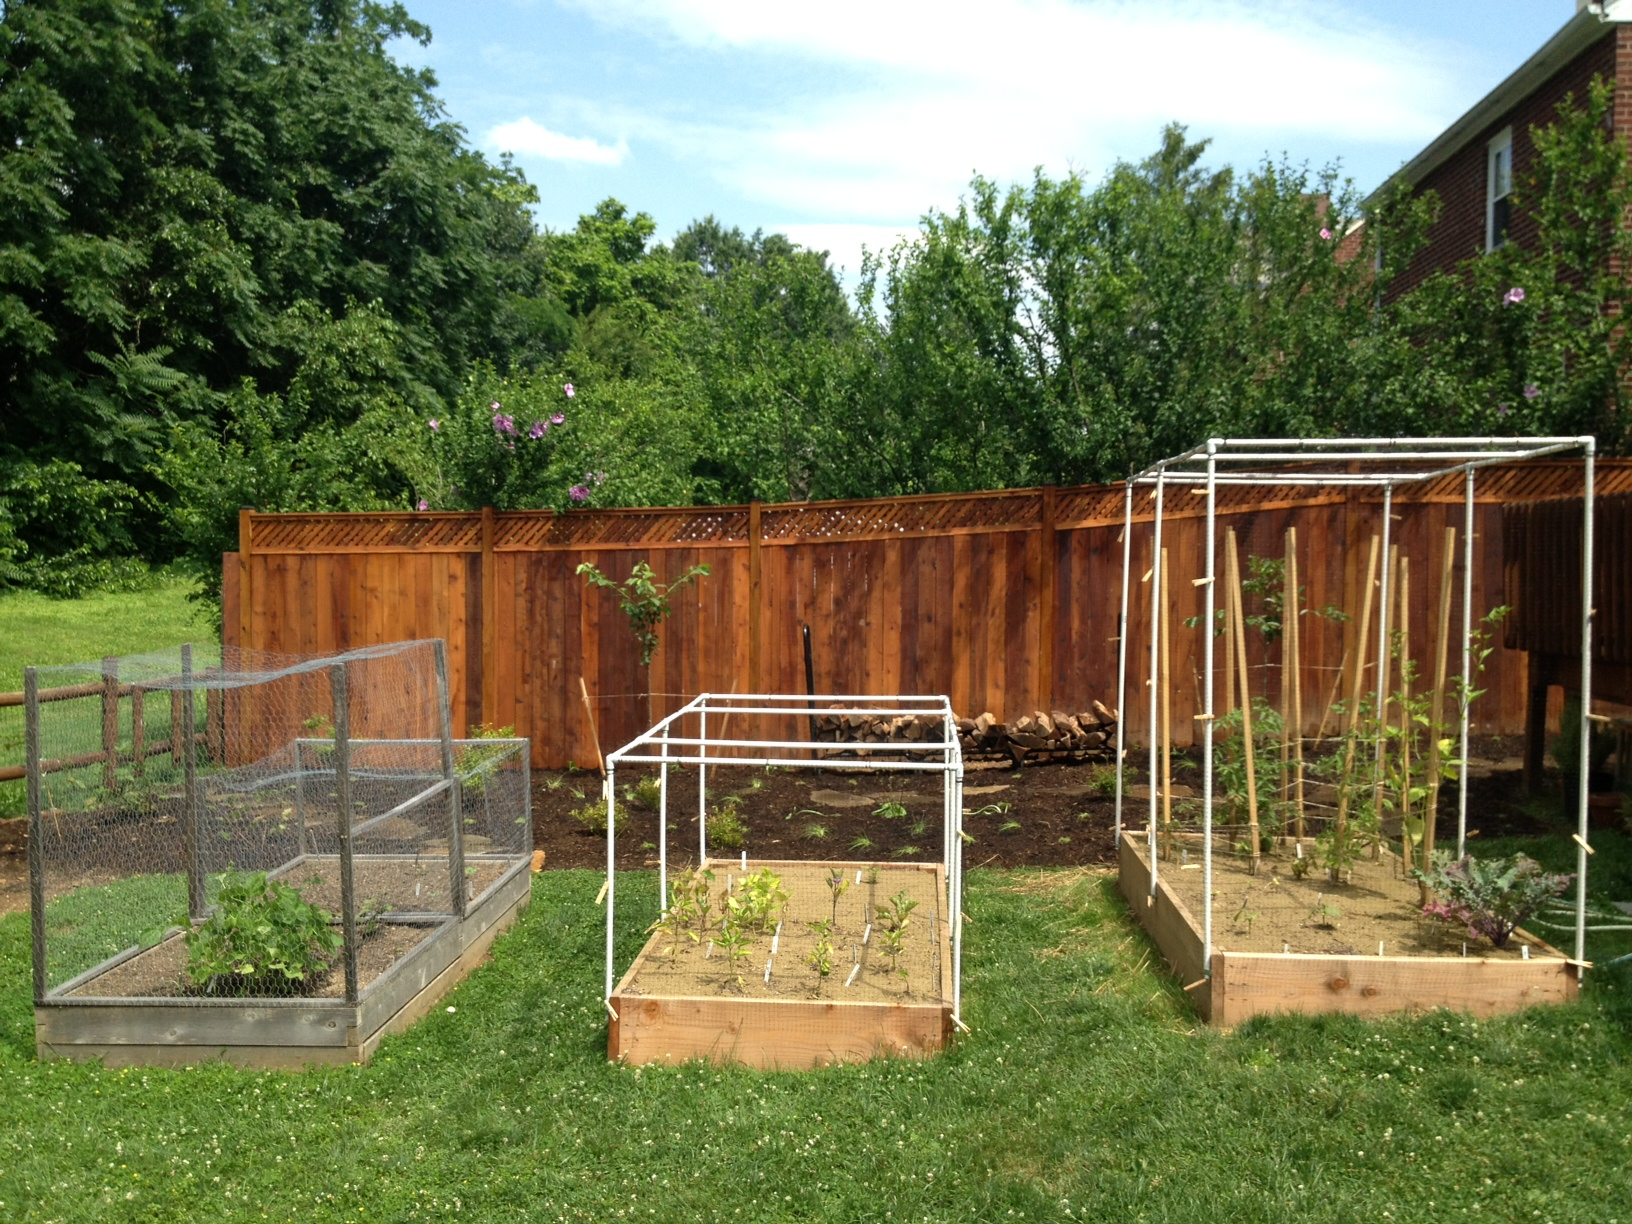 Raised vegetable beds and squirrel cages